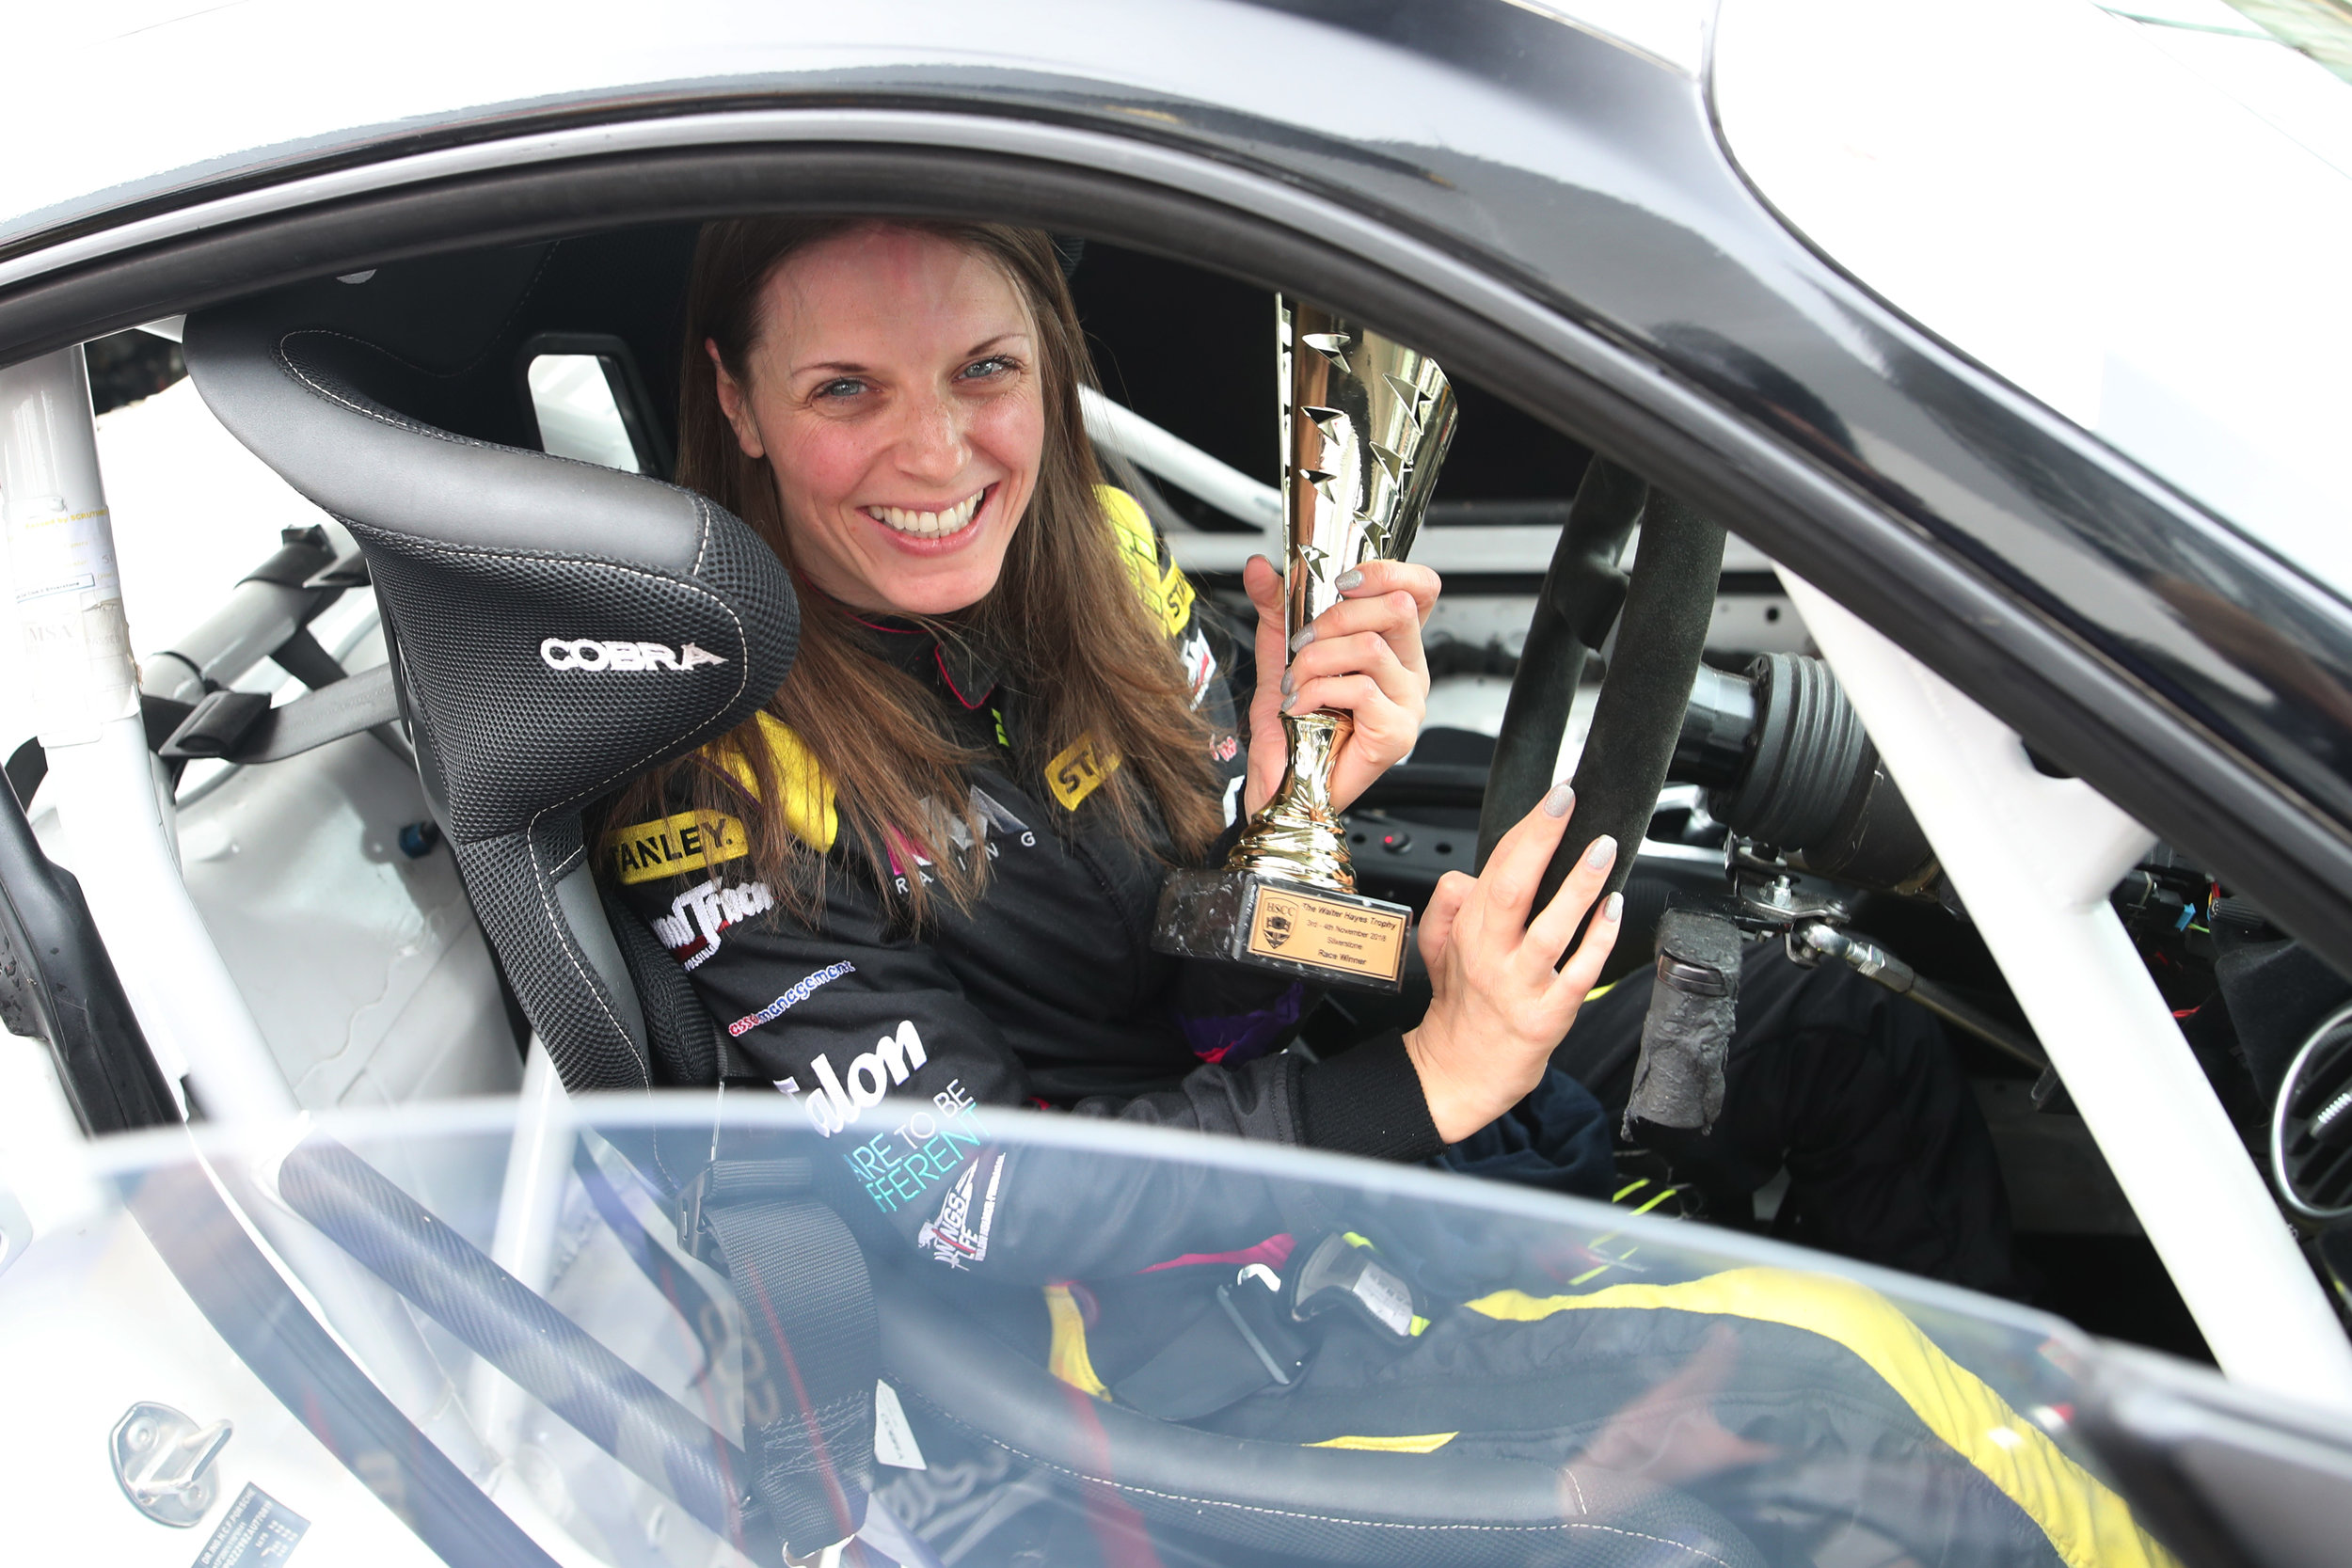 RACER - Nathalie races a hand-controlled Cayman S in the Porsche Club Championship and Classic Sports Car Club, competing against able-bodied men. The 2018 season saw her first race win, and 2019 sees her continue to track race and also venture into the exciting world of Rally.Nathalie McGloin Racer